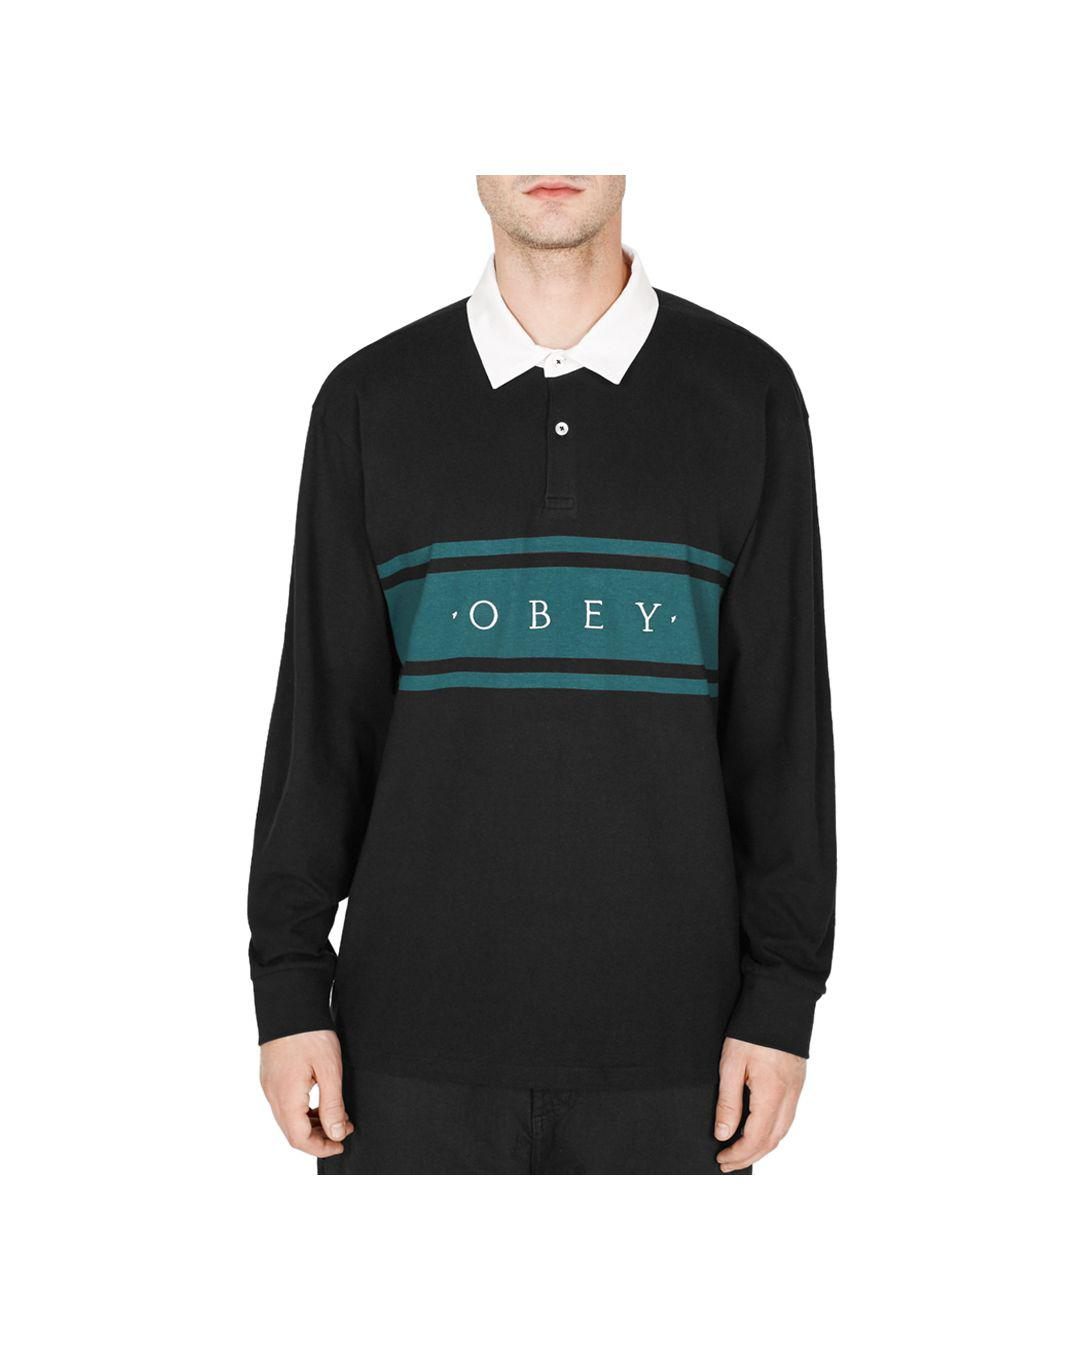 a138e095 Obey Hero Classic Long-sleeve Polo Shirt in Black for Men - Lyst